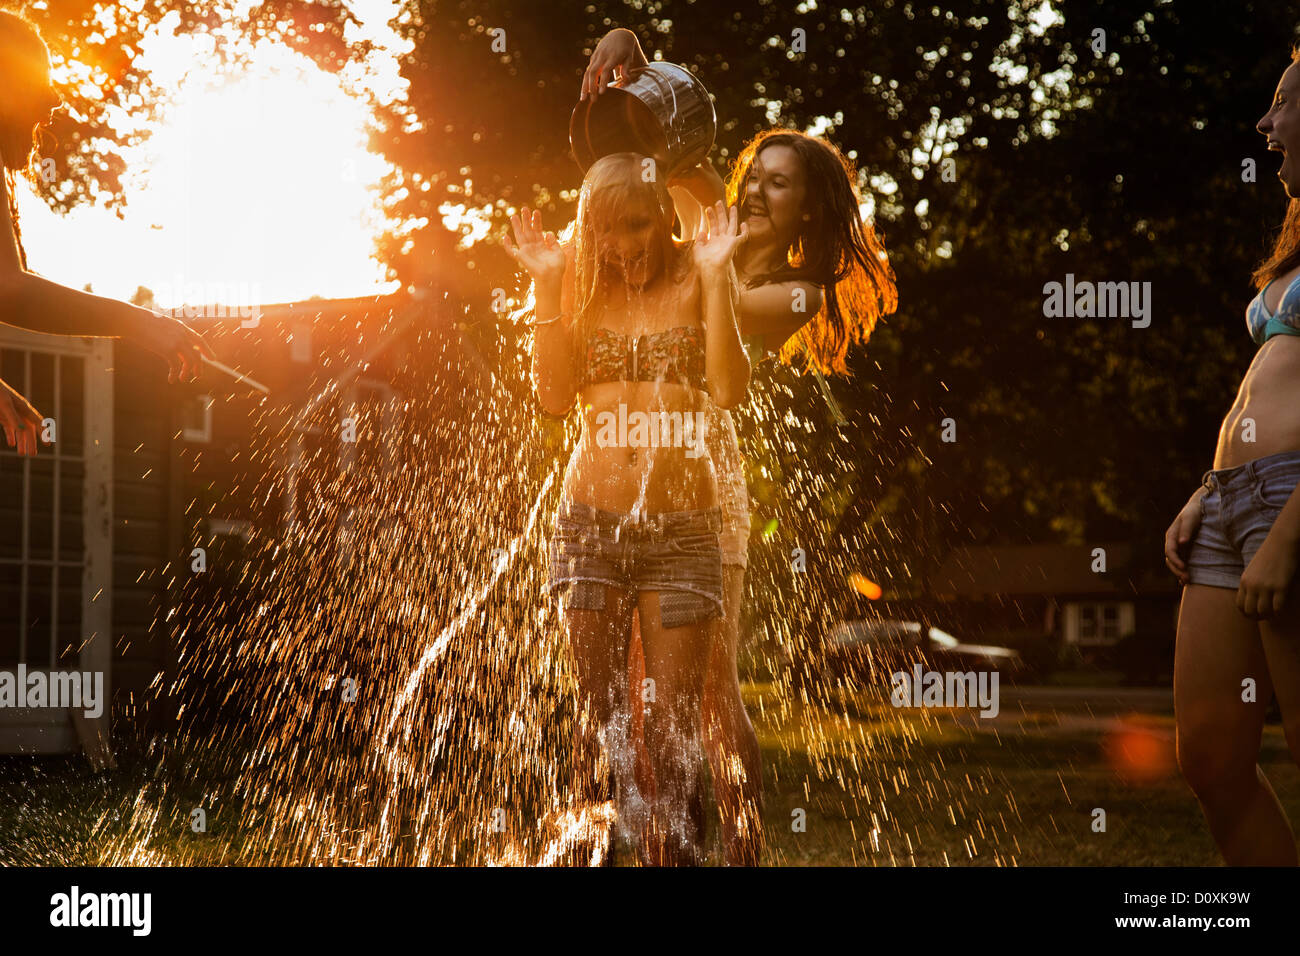 Girl pouring bucket of water over friend's head - Stock Image